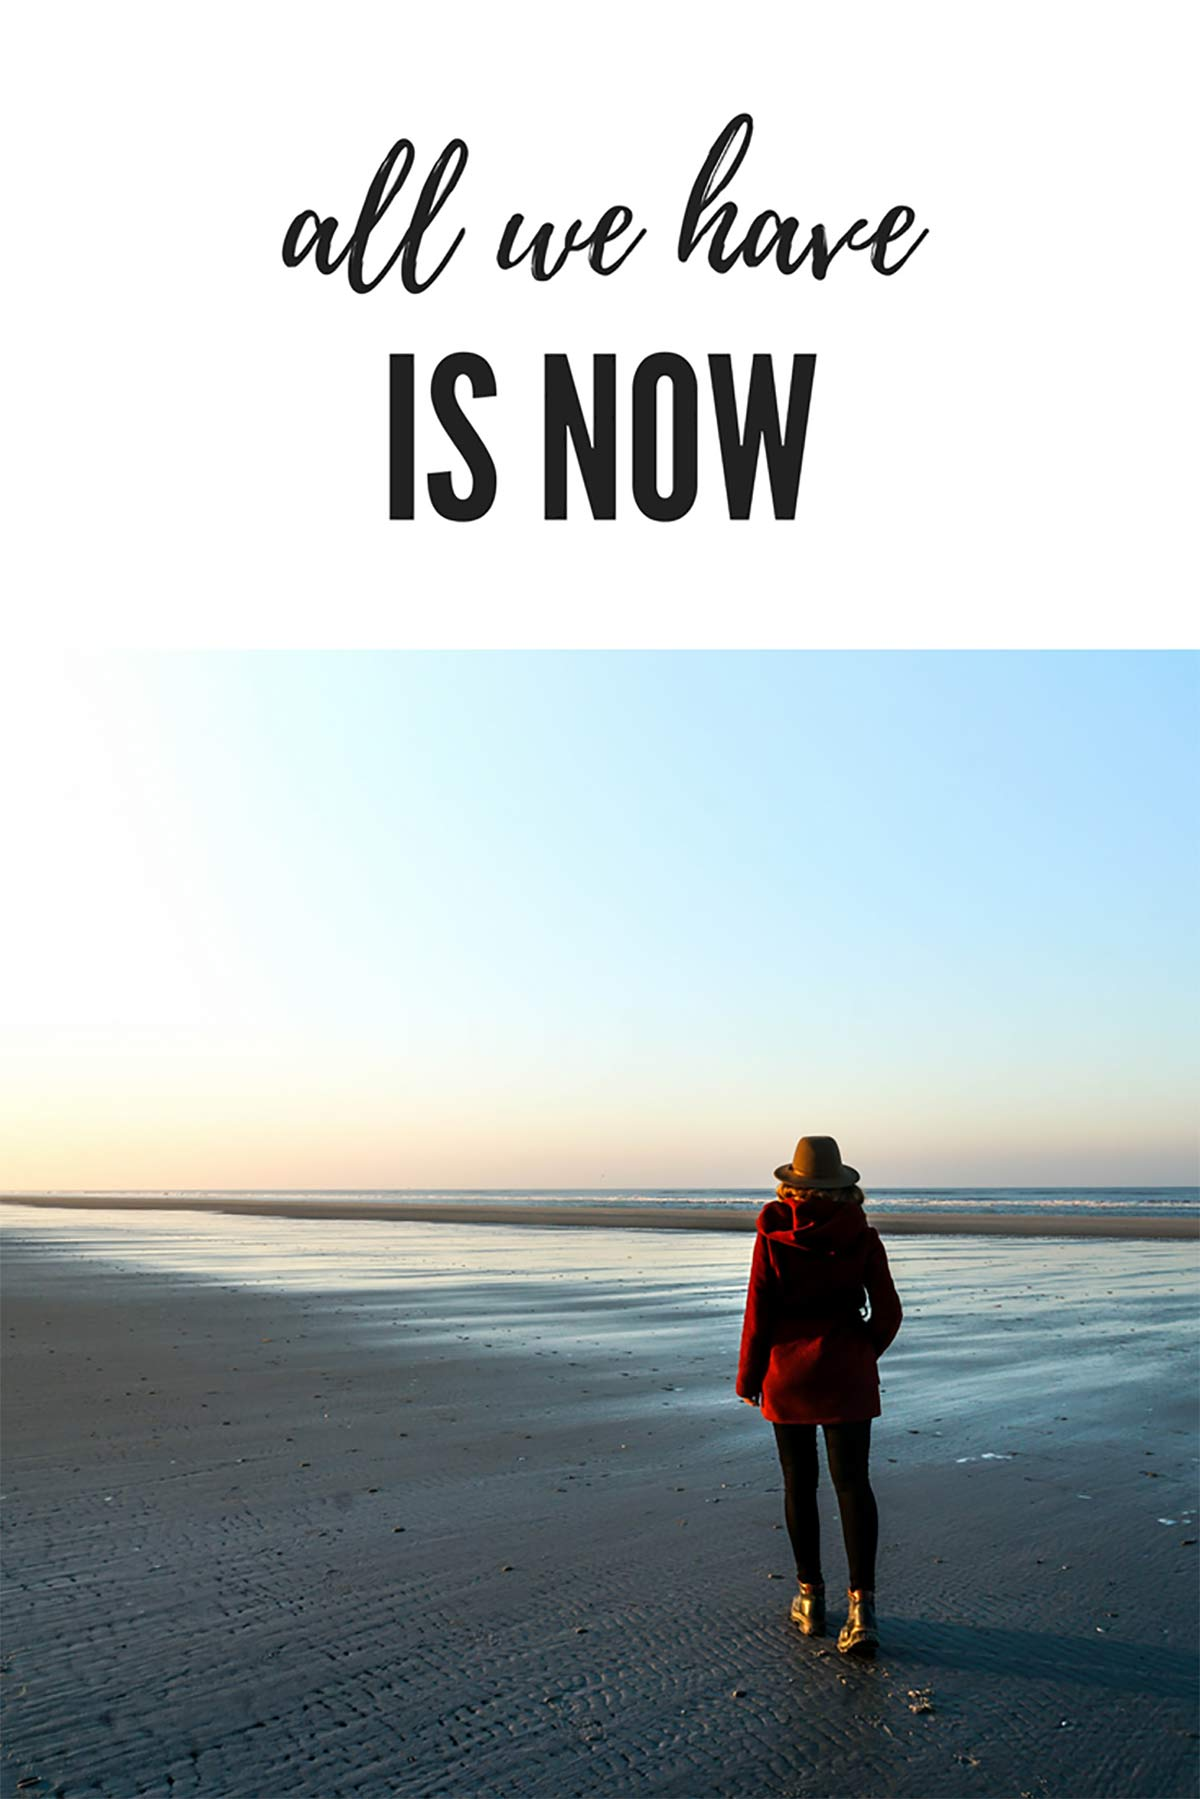 All we have is now.